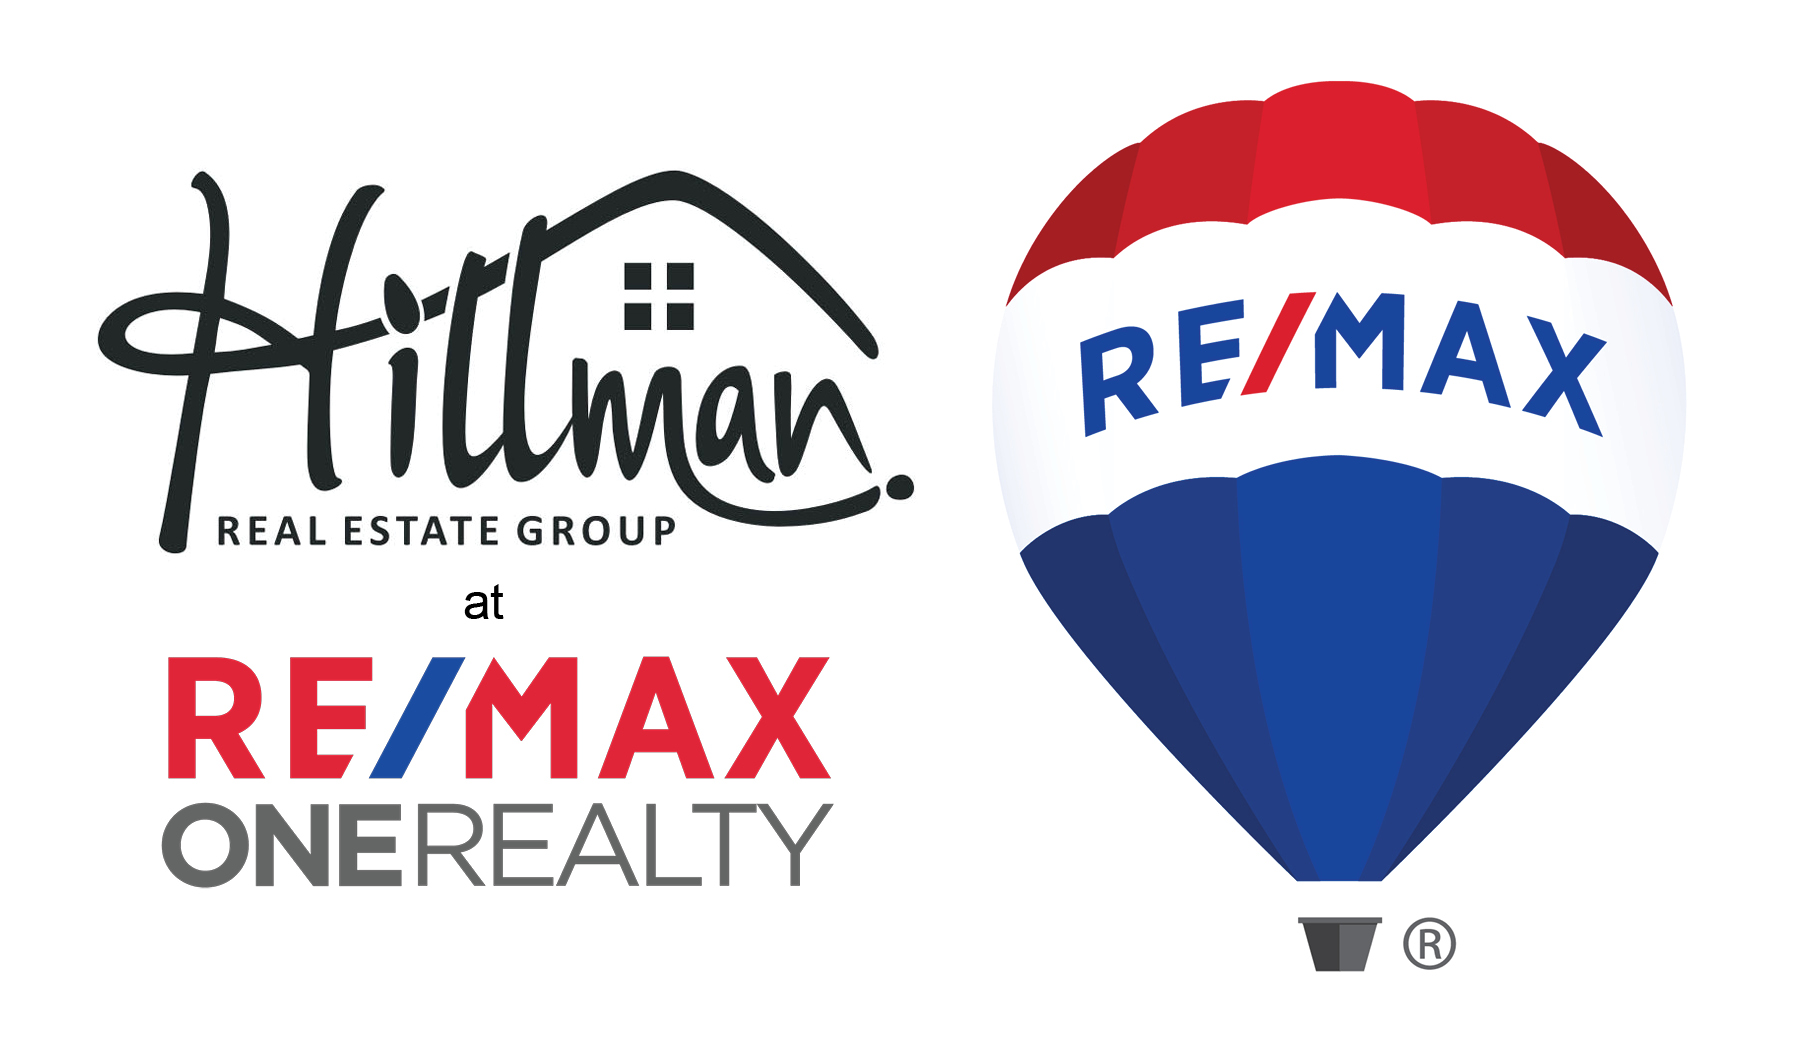 Hillman Real Estate Group at RE/MAX One Realty logo